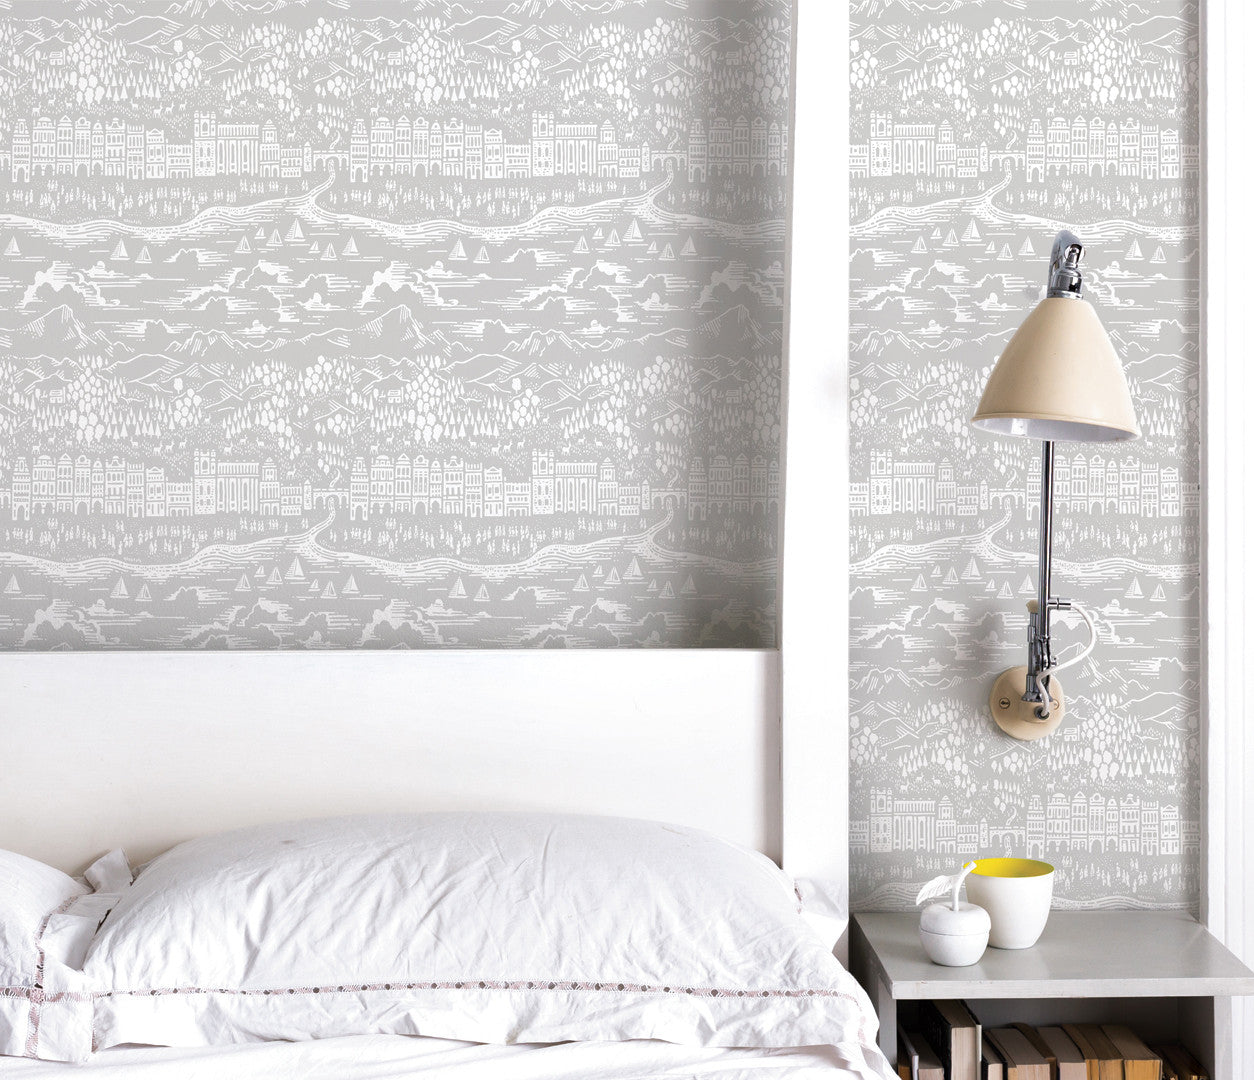 Wall Art Ideas: Economical Screen Prints, Illustrated Wallpapers, Province Wallpaper in Light grey